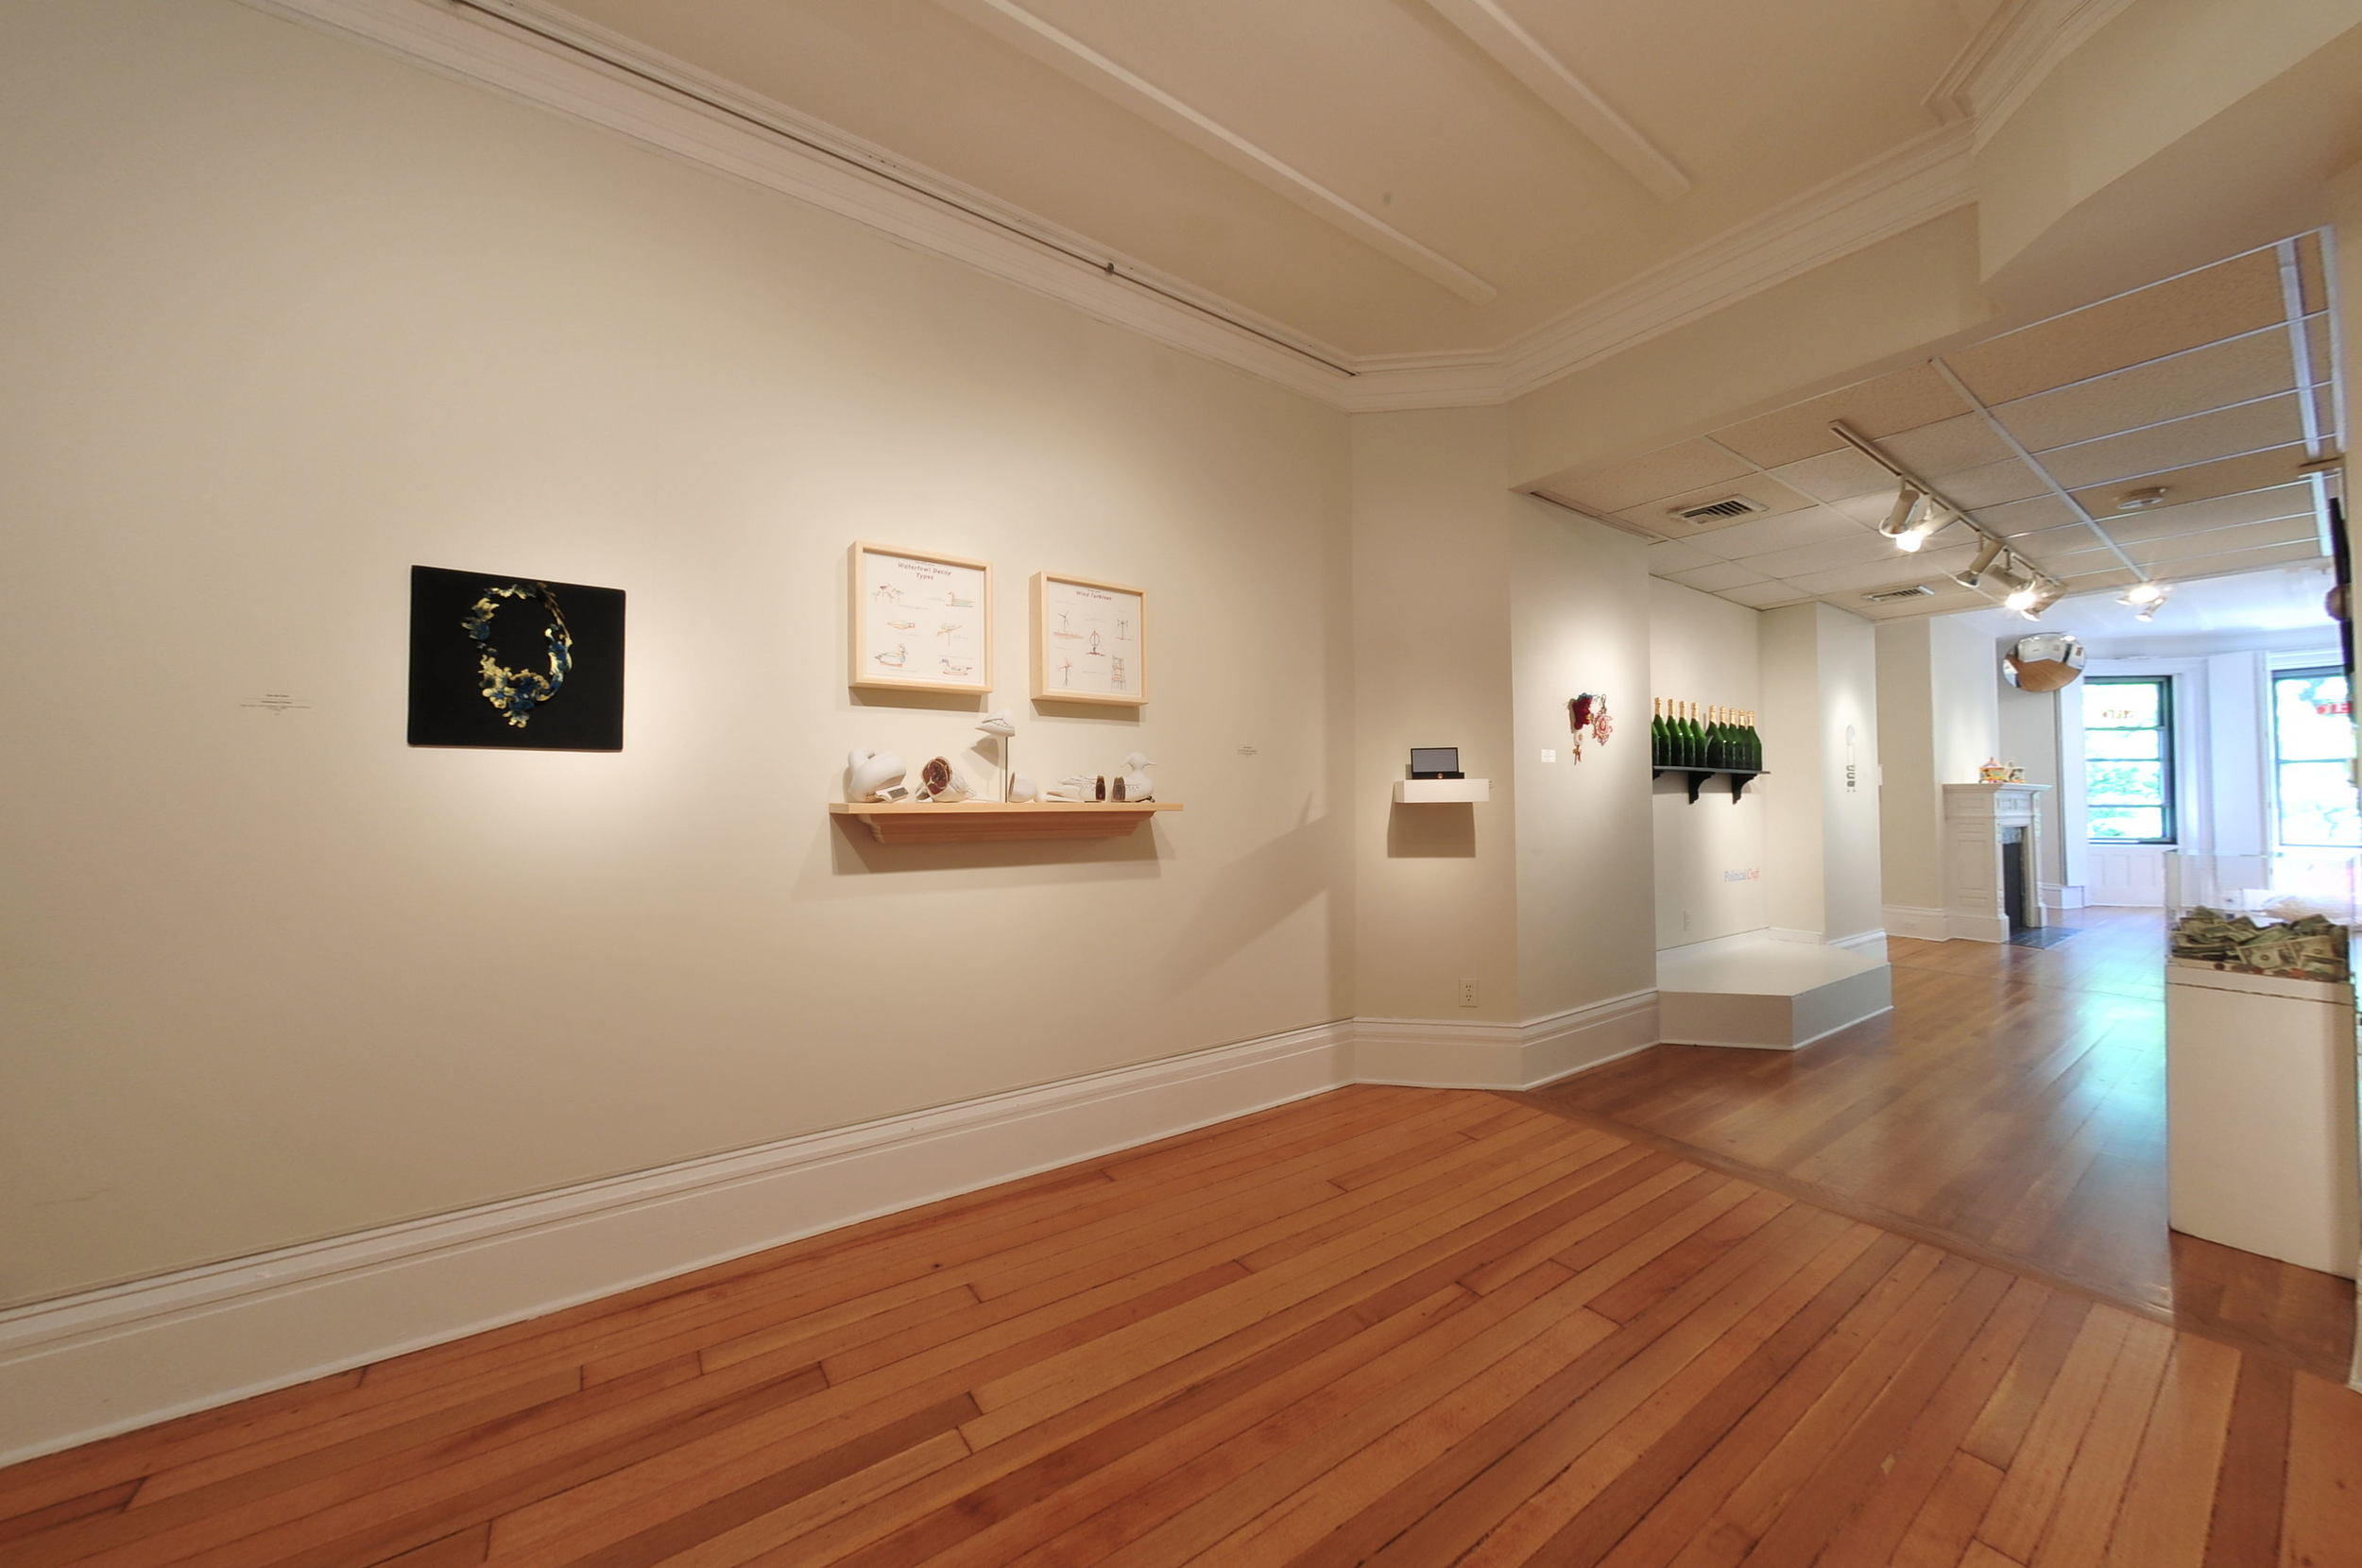 Installation view from Political Craft exhibition at the Society of Arts and Crafts, Boston. Photo by Fabio Fernandez